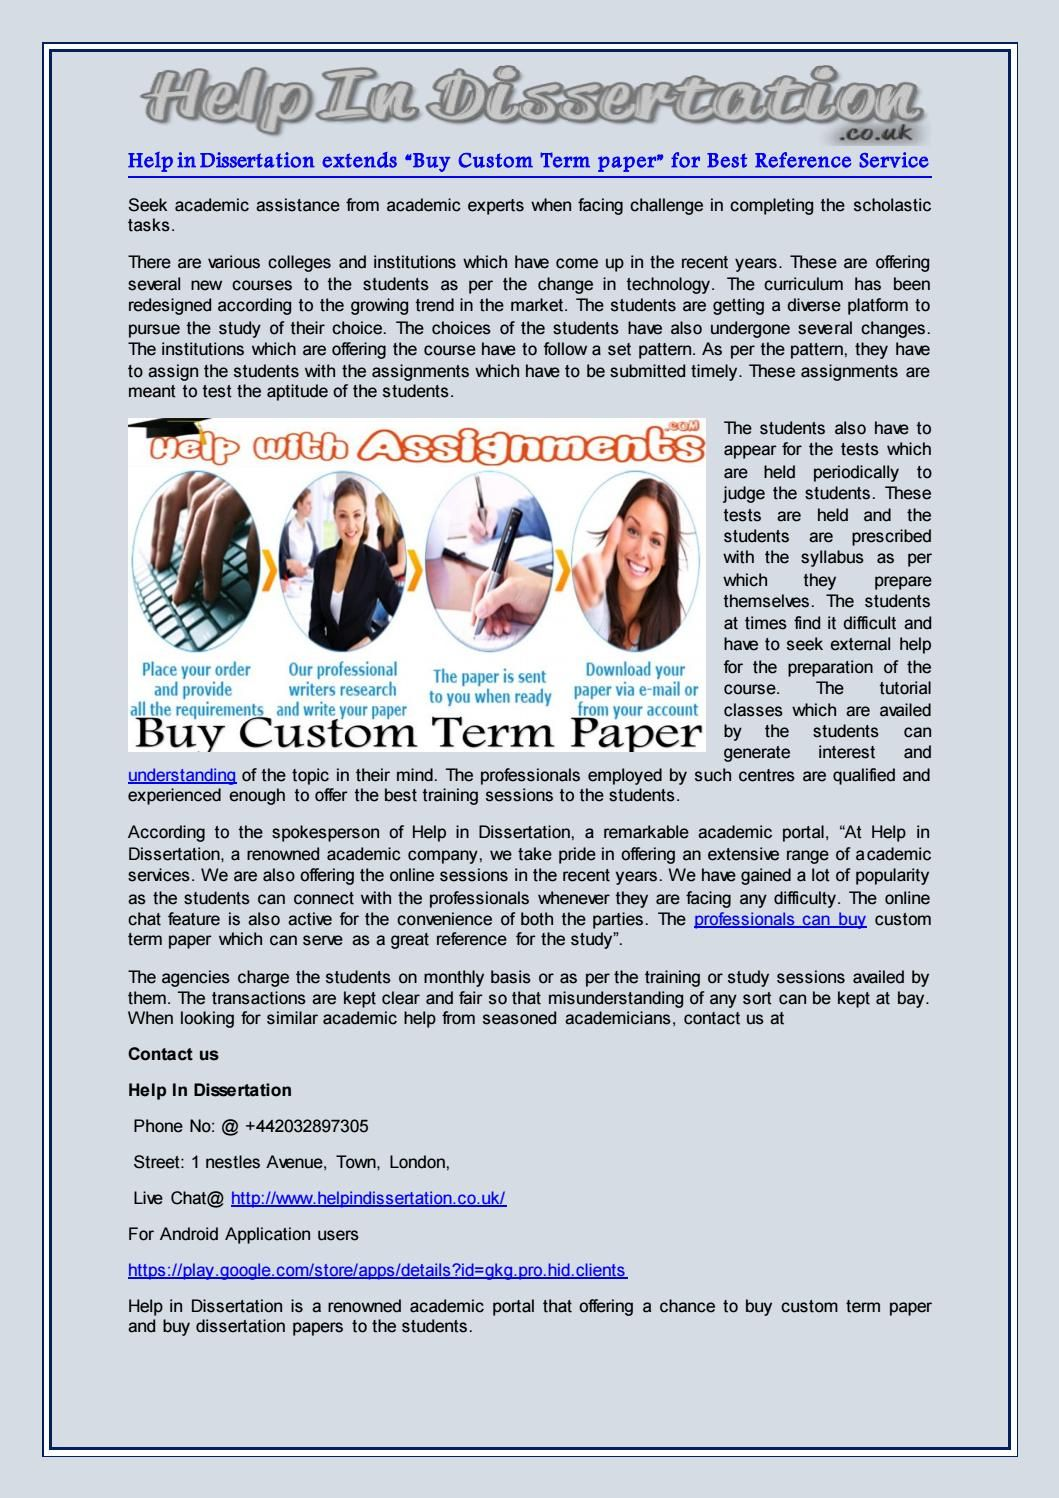 """Help in dissertation extends """"buy custom term paper"""" for best reference service"""